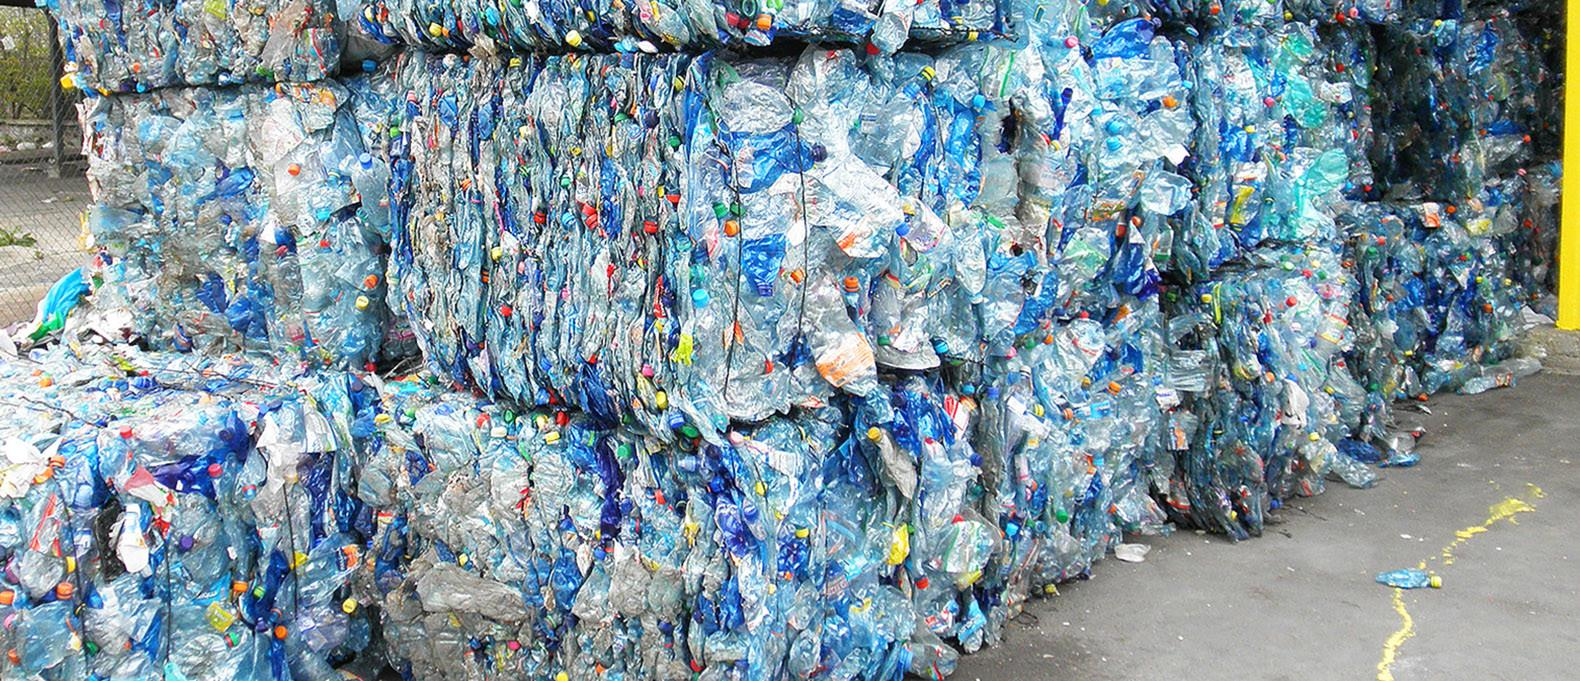 Scientists Turn Plastic Bottles Into Clean Fuel Without